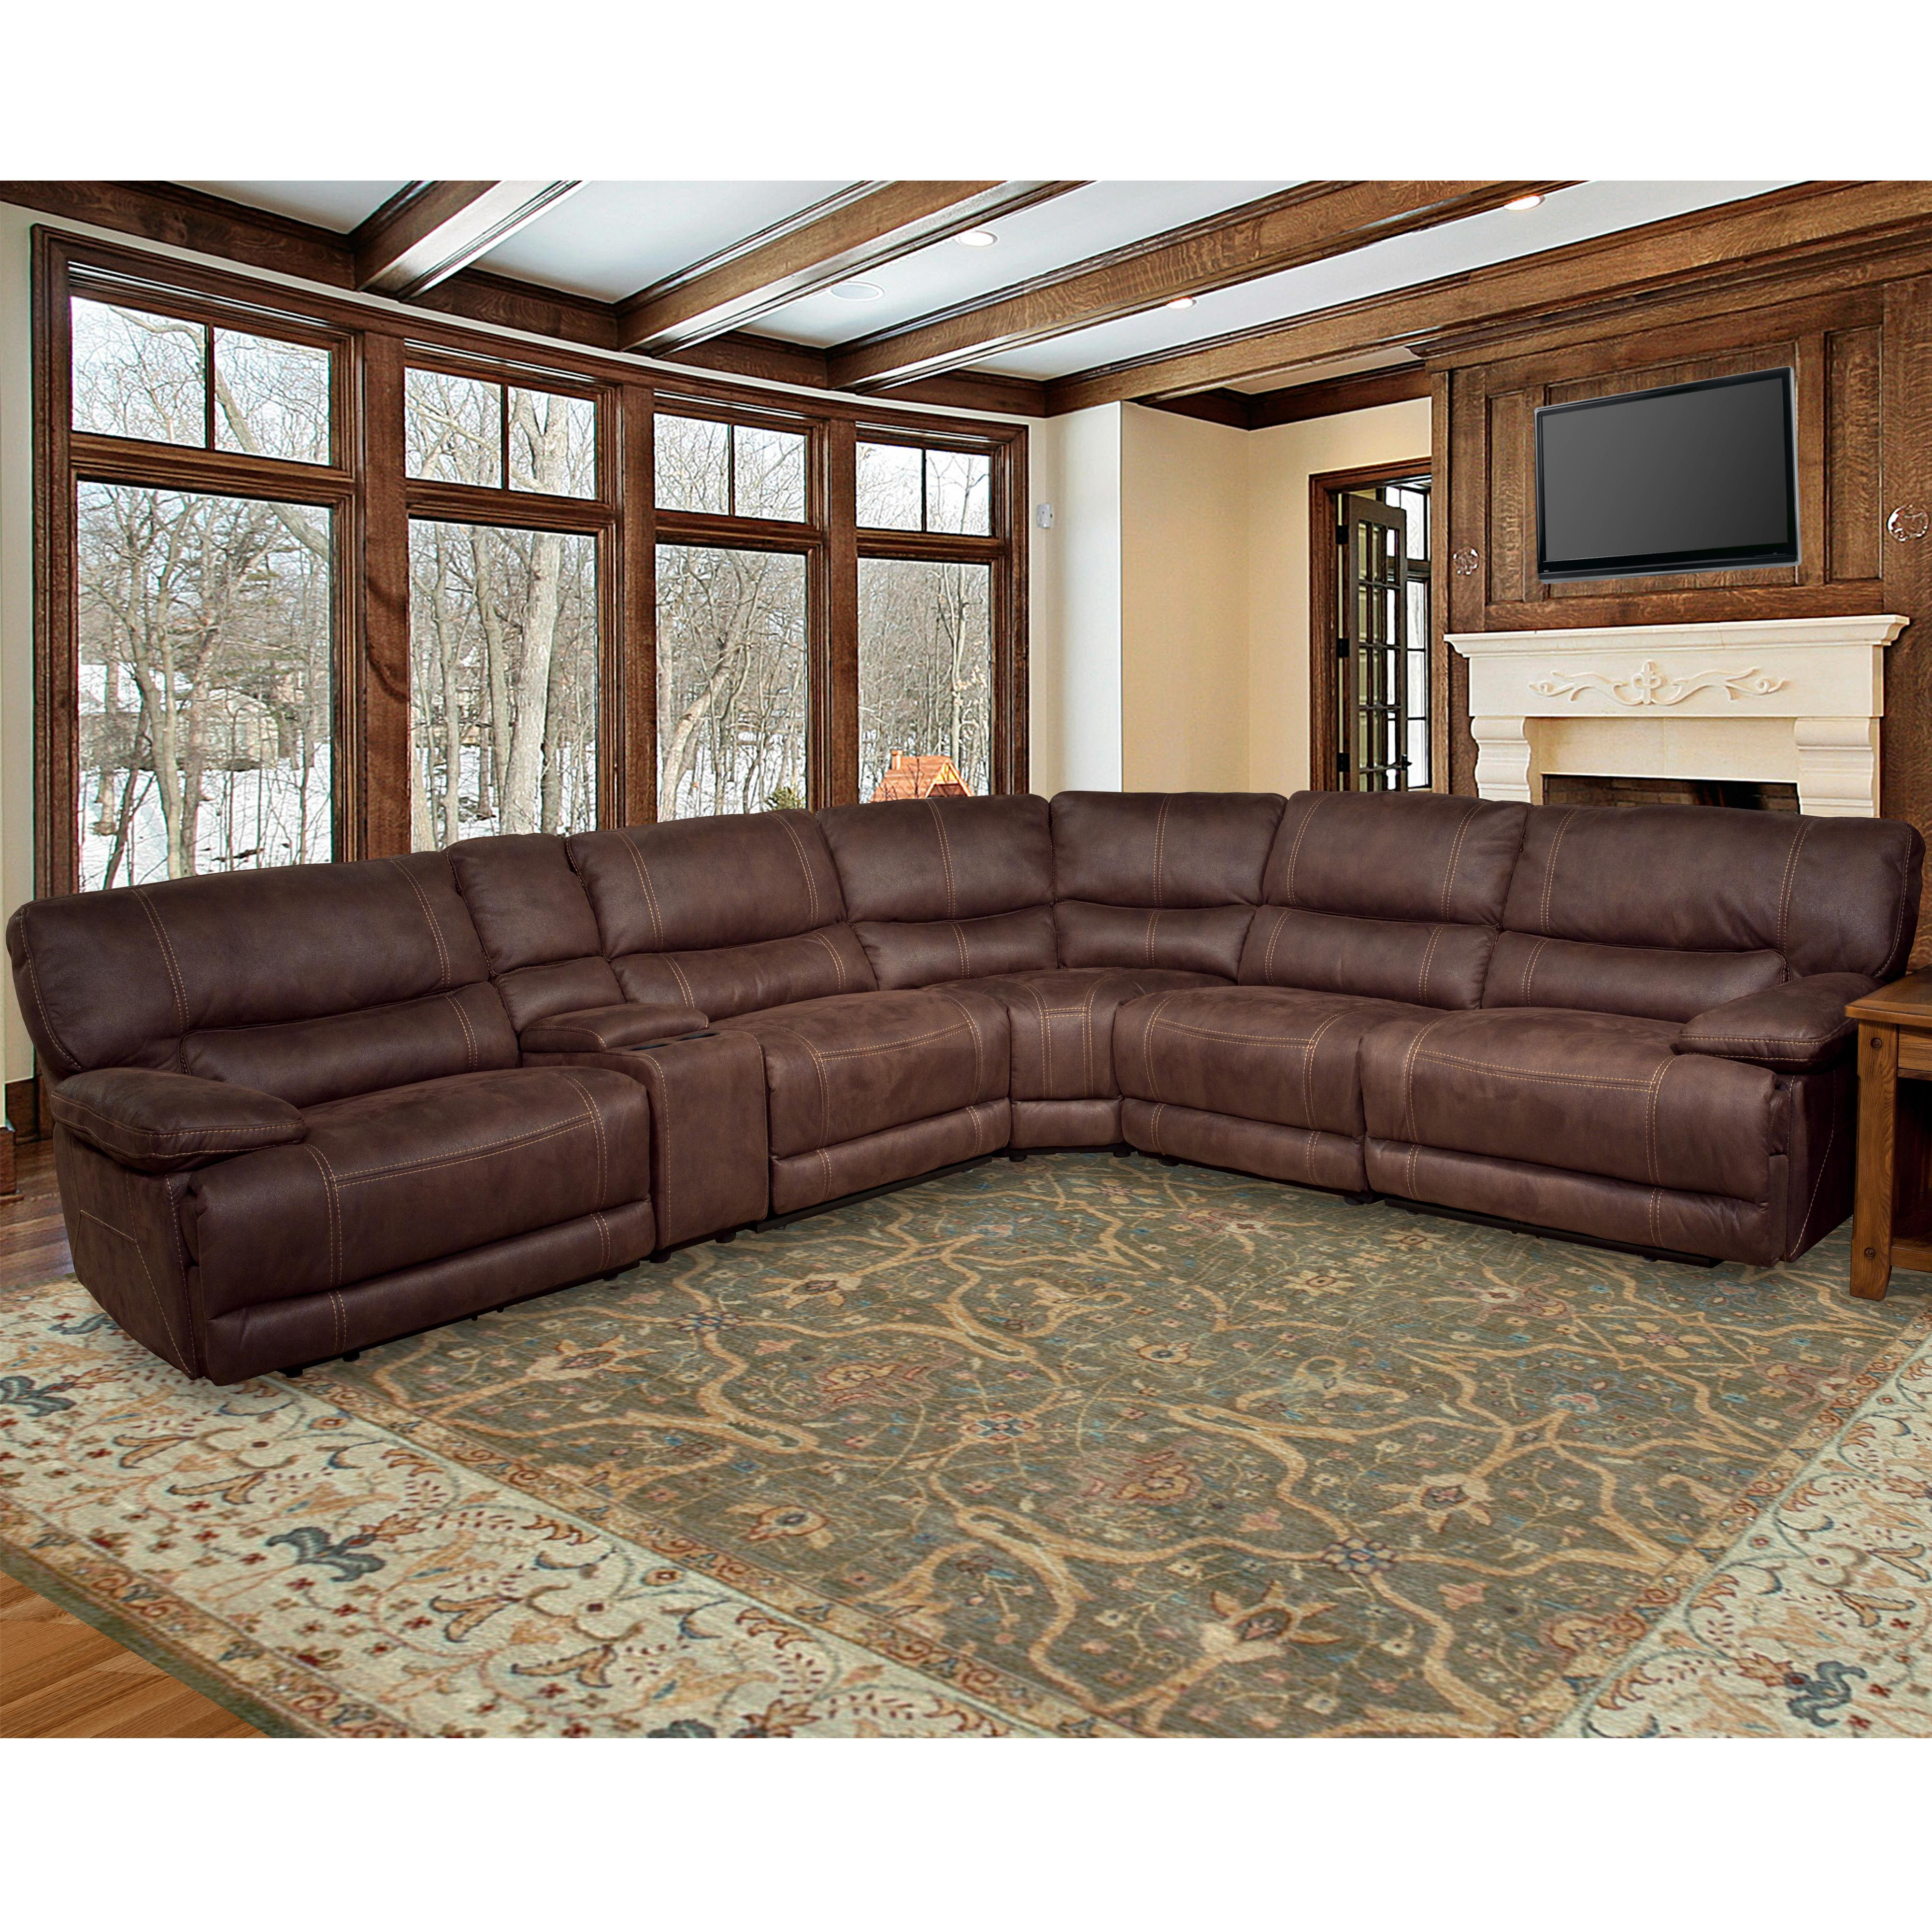 Parker Living Pegasus Power Reclining Sectional Sofa - Item Number: MPEG-PACKM-DK